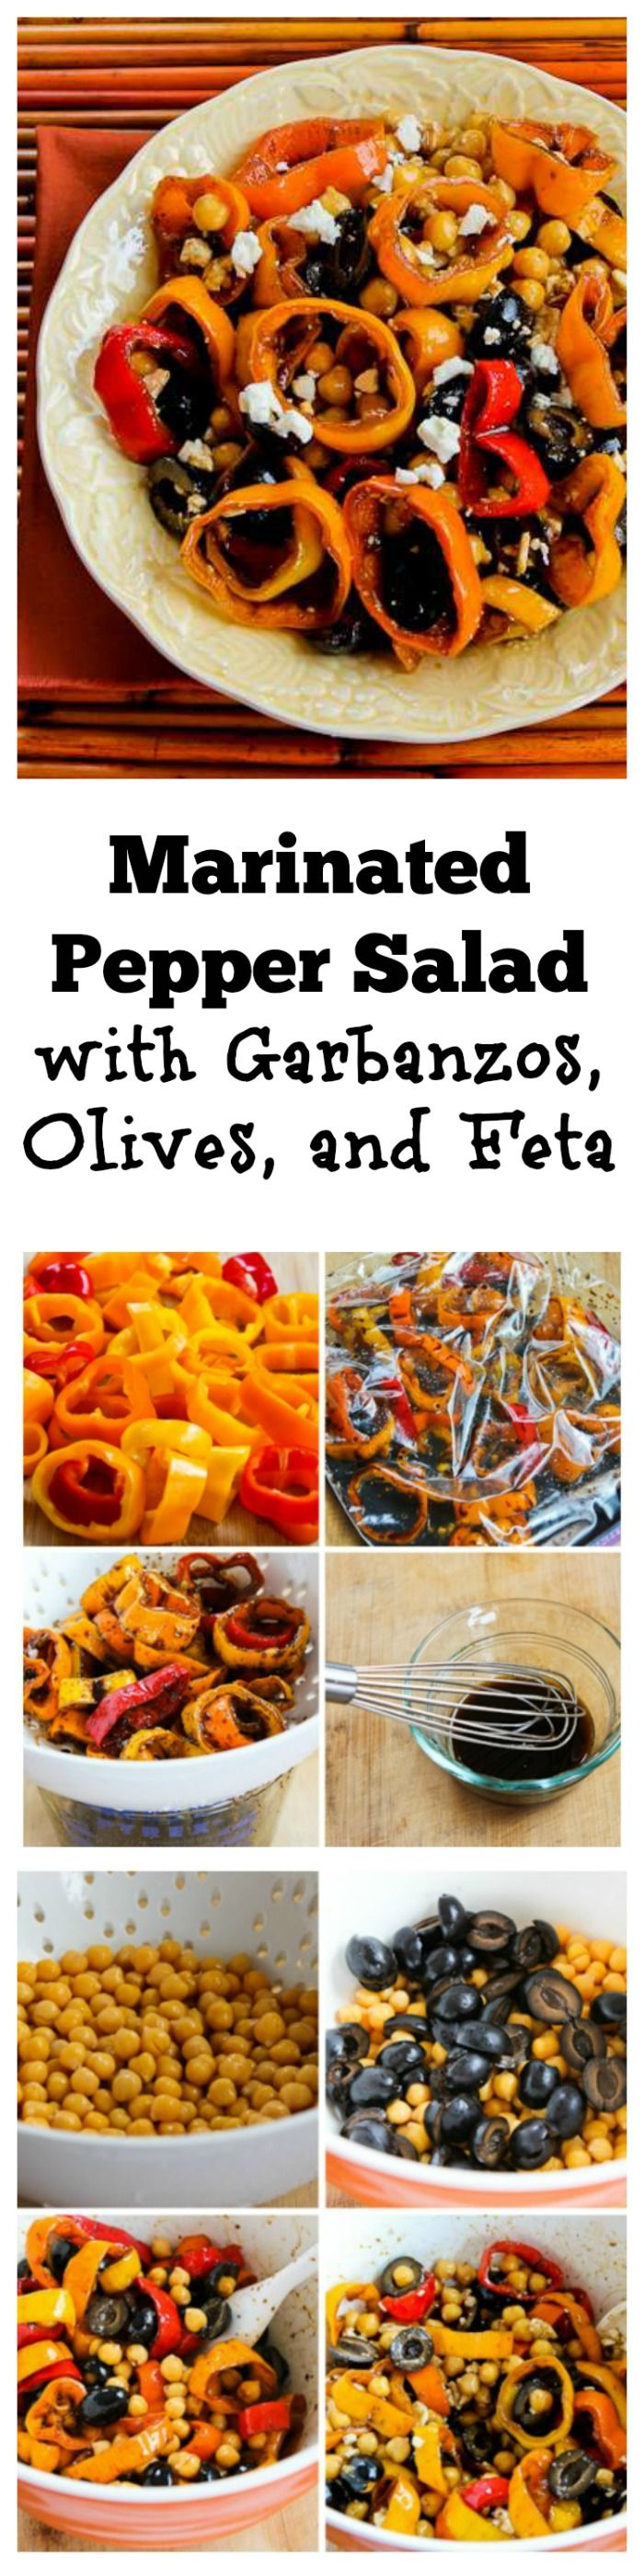 Marinated Pepper Salad with Garbanzos, Olives, and Feta | I love ...